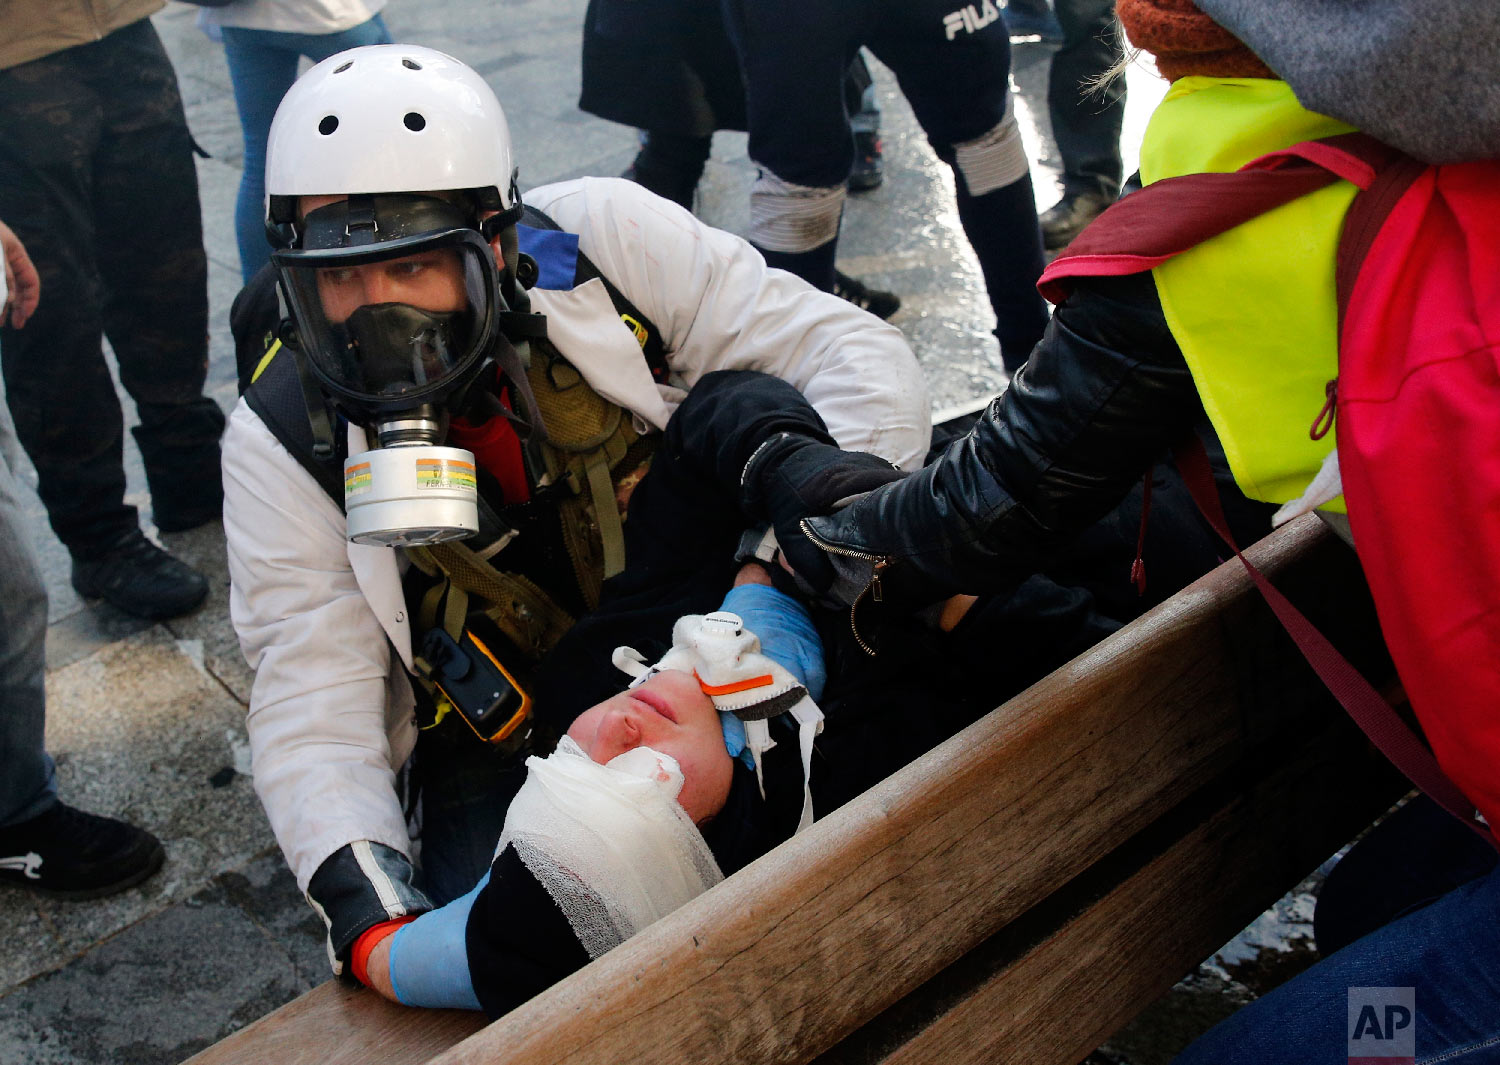 A protester is treated by medics during a demonstration March 16, 2019, in Paris. (AP Photo/Christophe Ena)